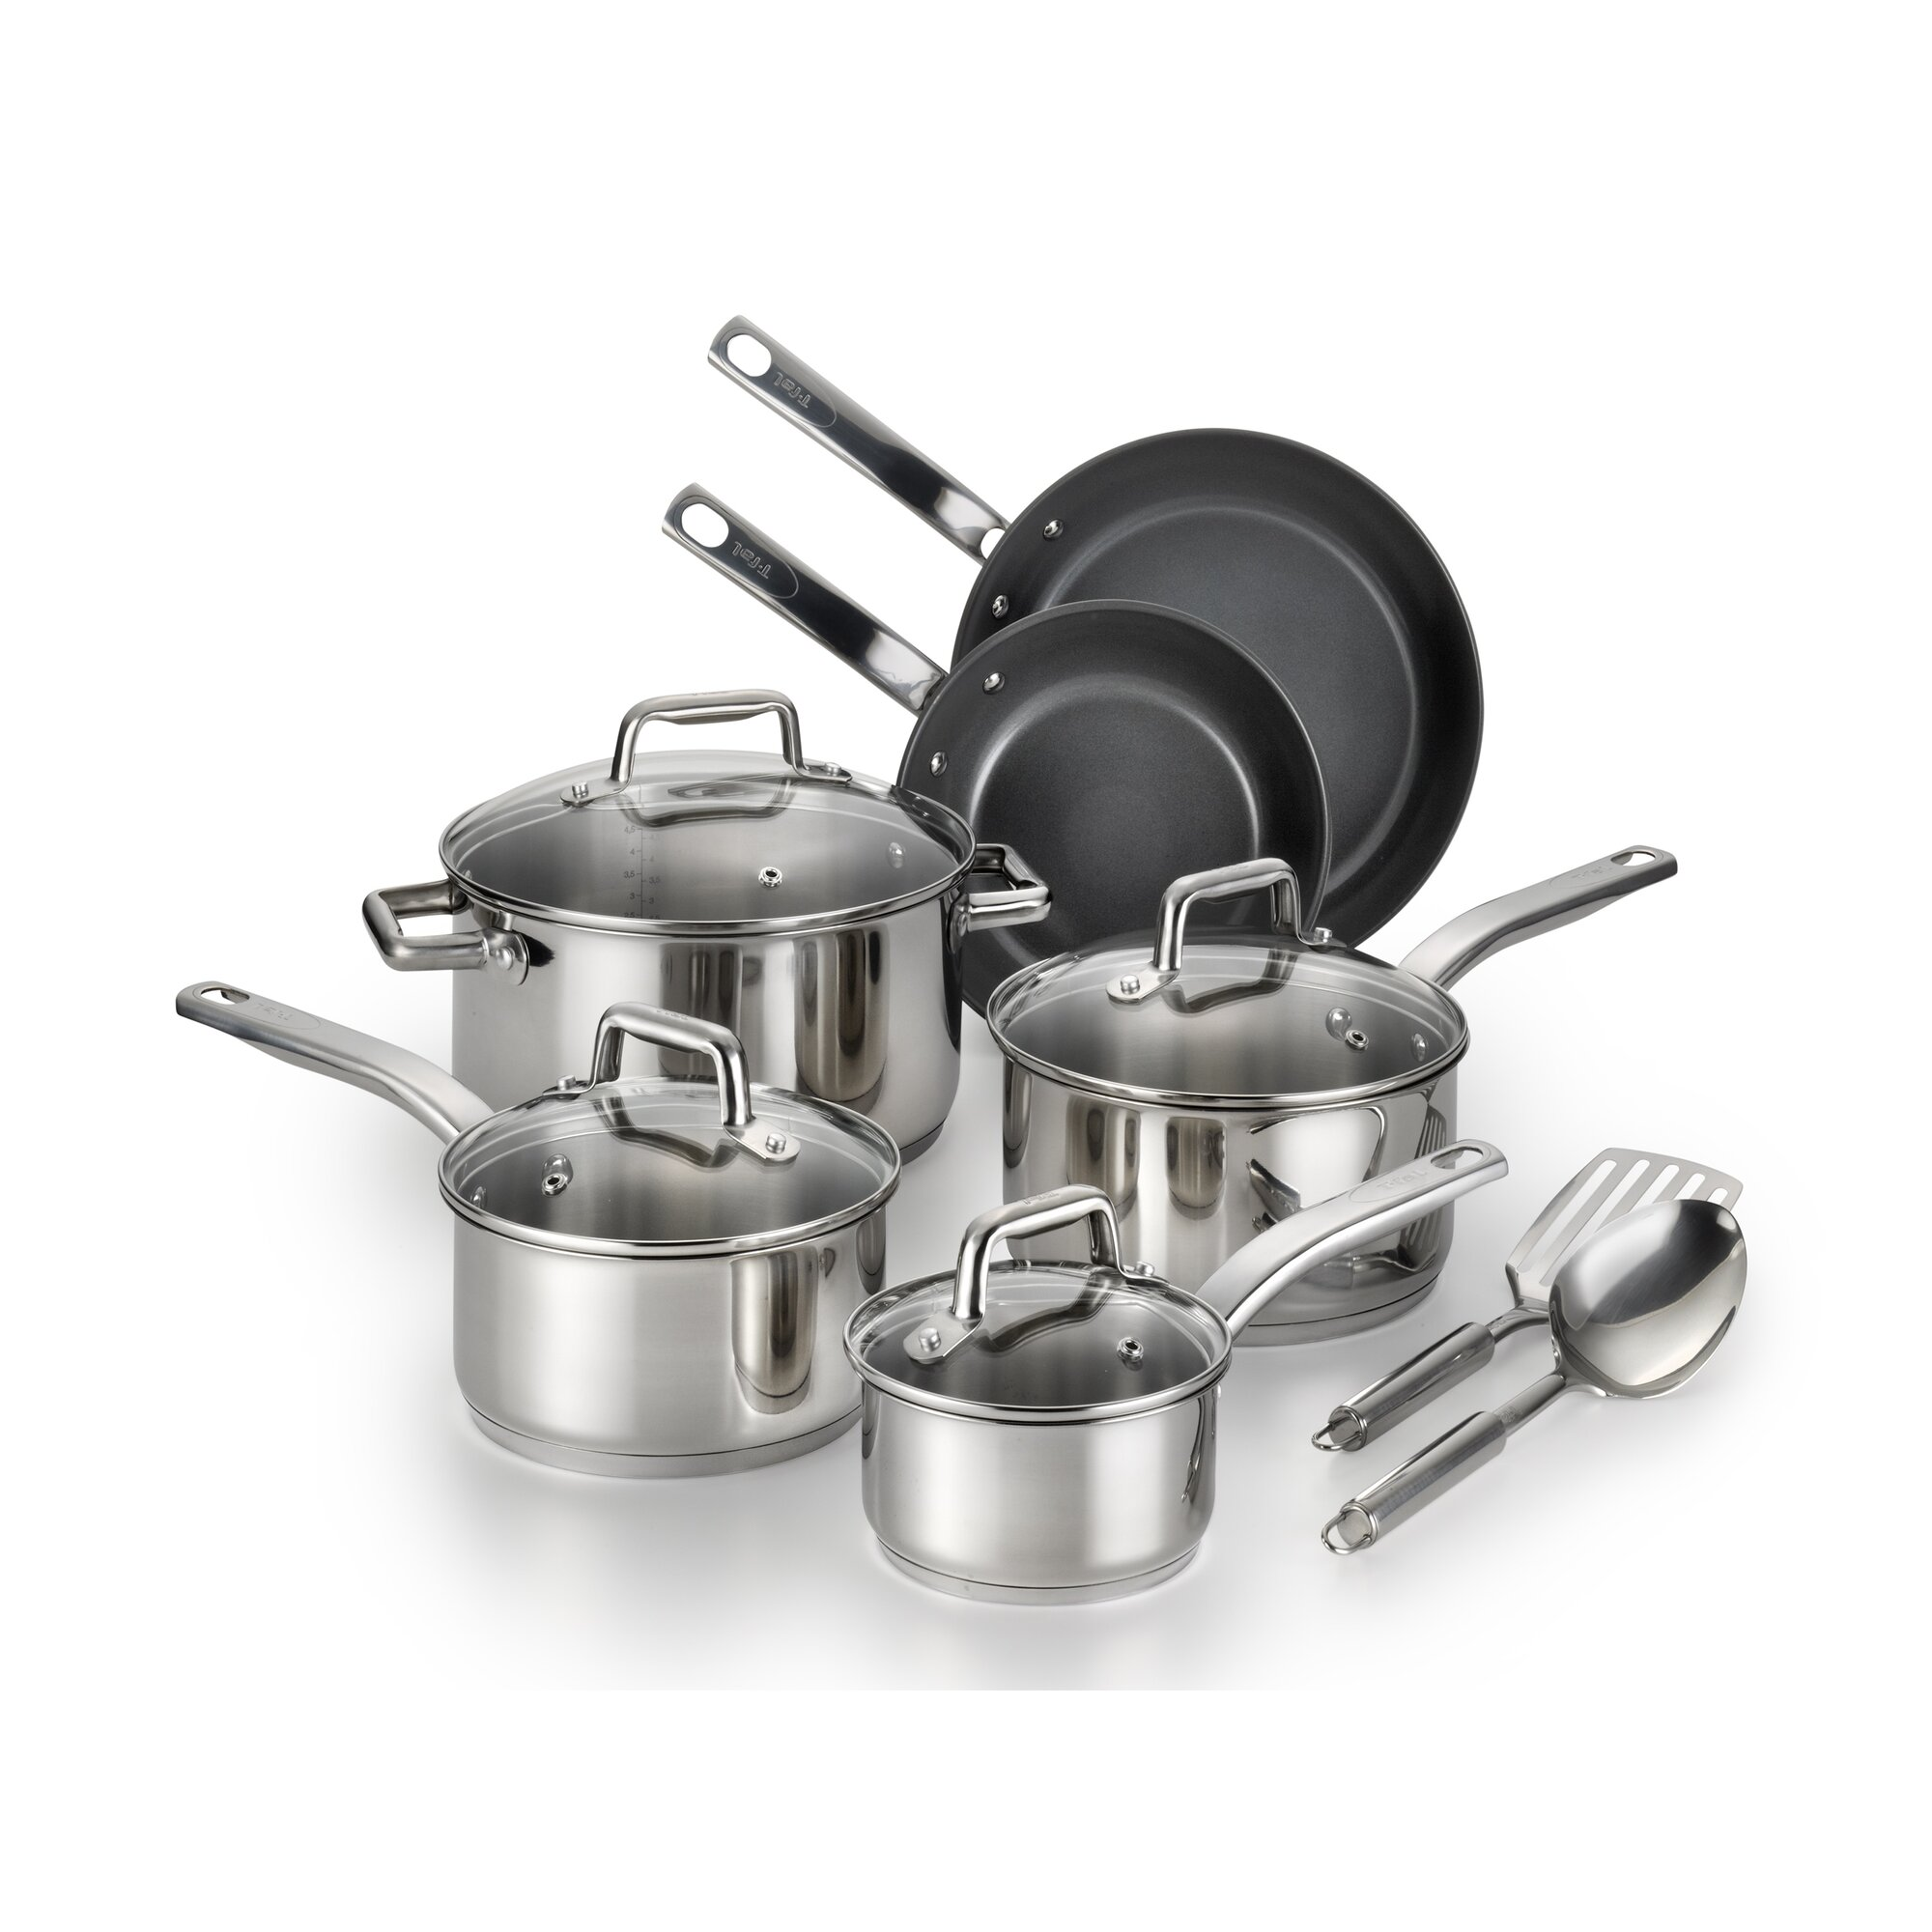 T-fal Precision 12 Piece Cookware Set & Reviews | Wayfair